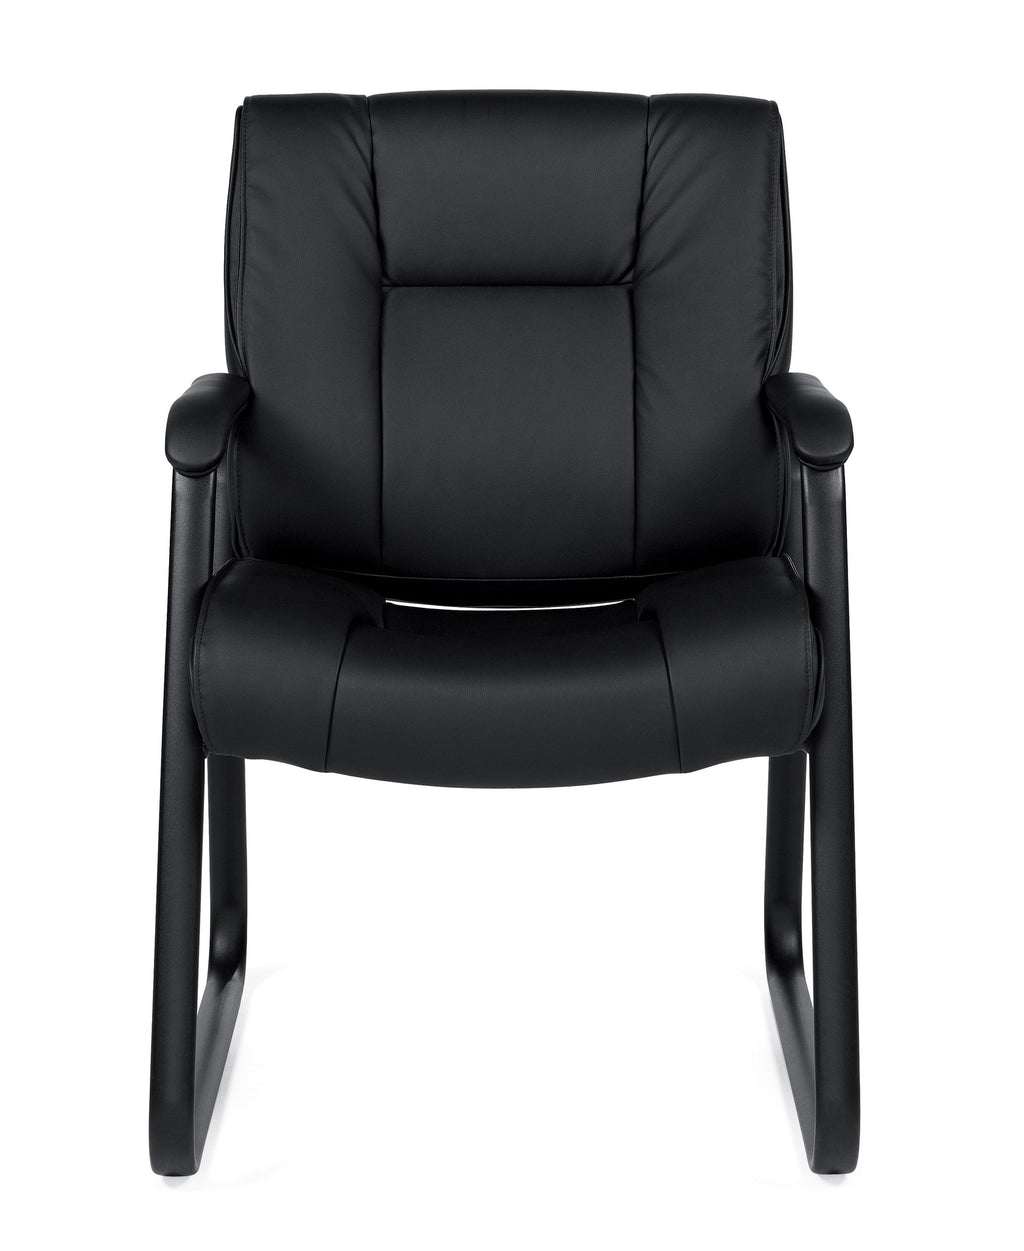 OTG 2782 Guest Chair